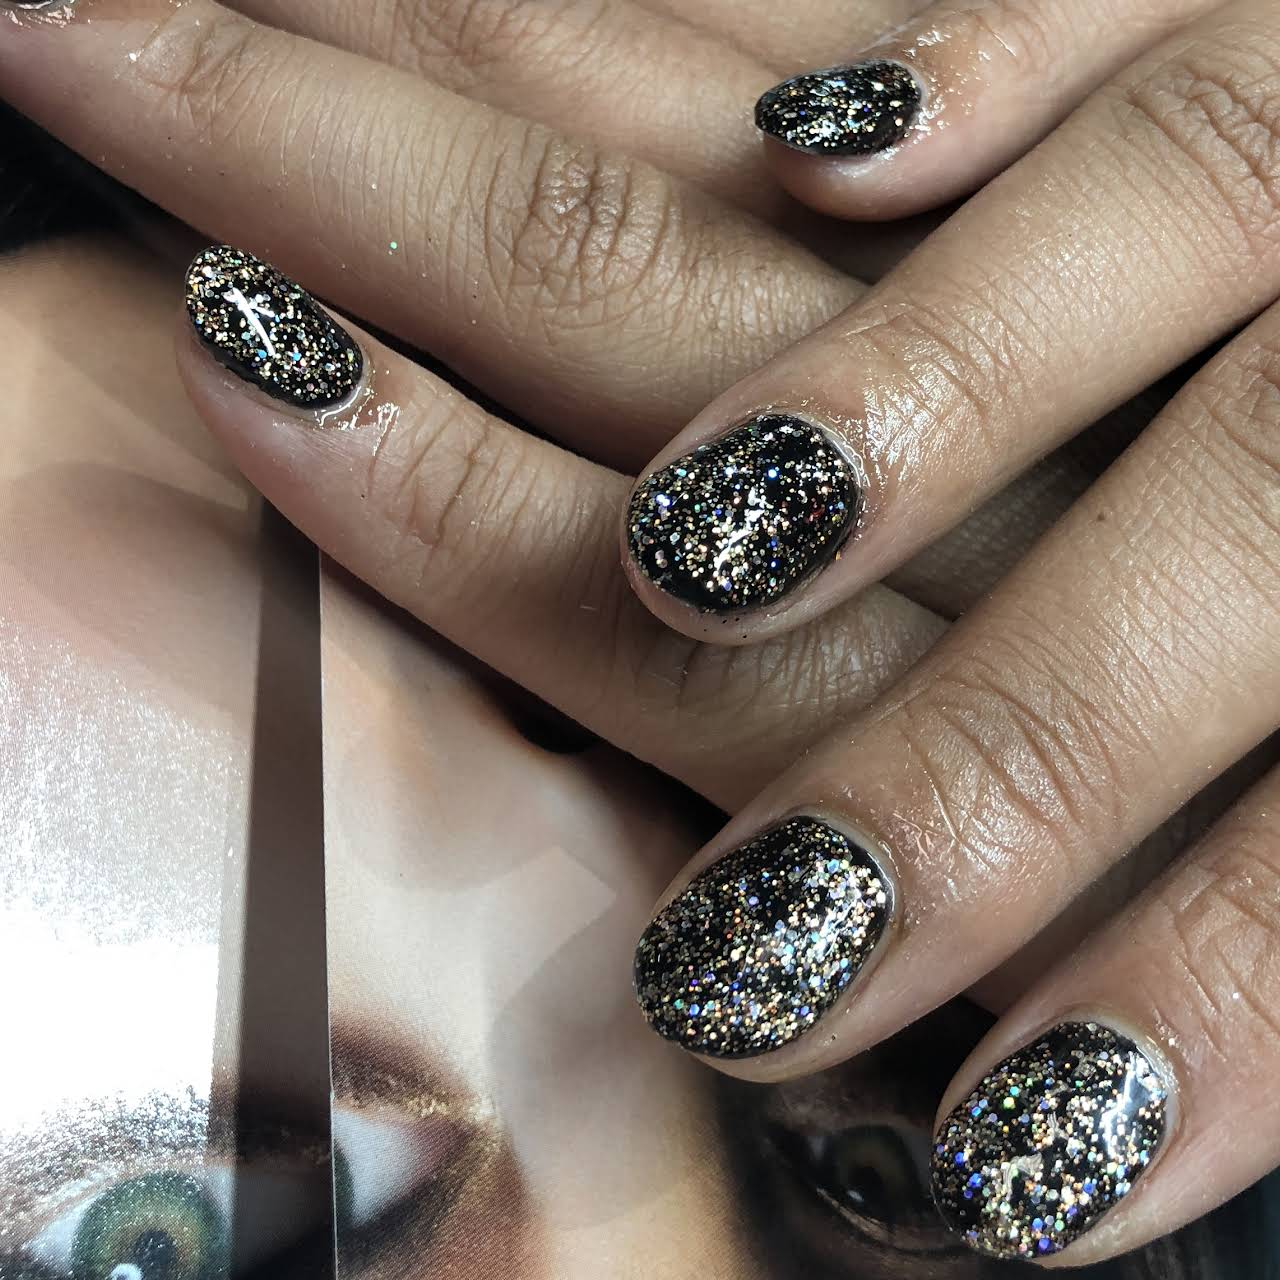 Fashion Nails - WE OPEN 7 DAY A WEEK